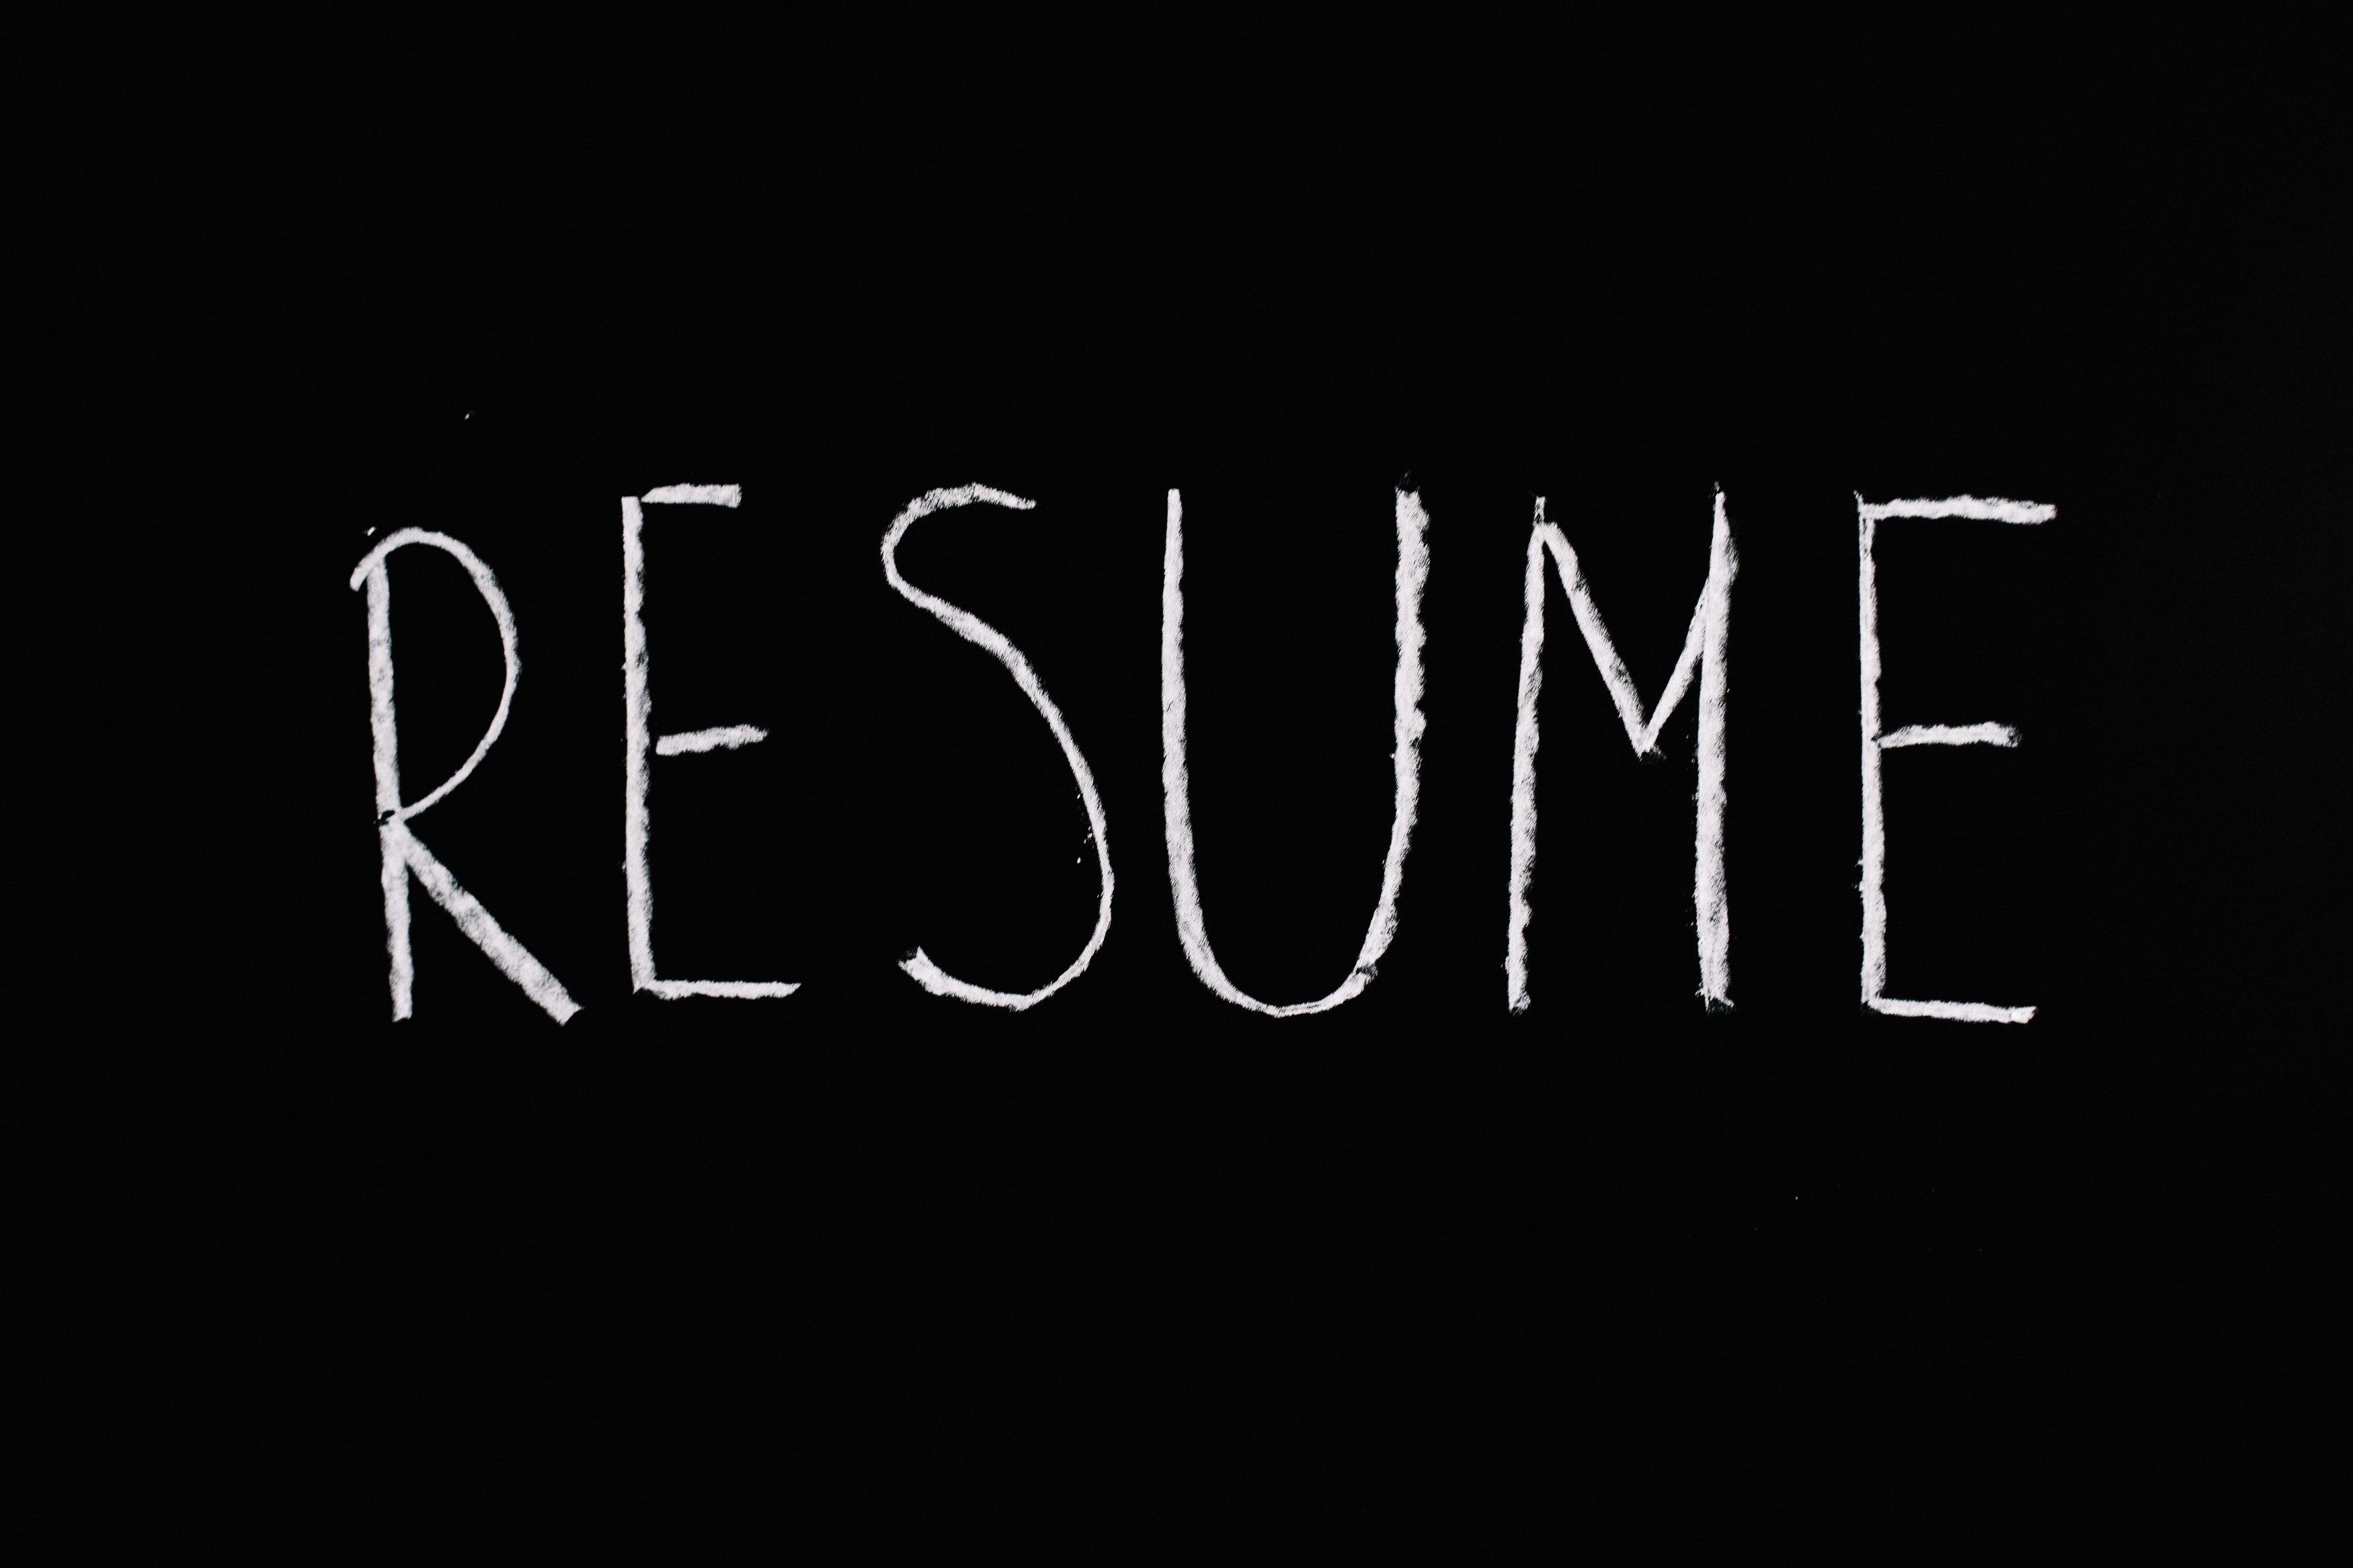 The word resume is written in white on black background, that looks like a chalkboard.